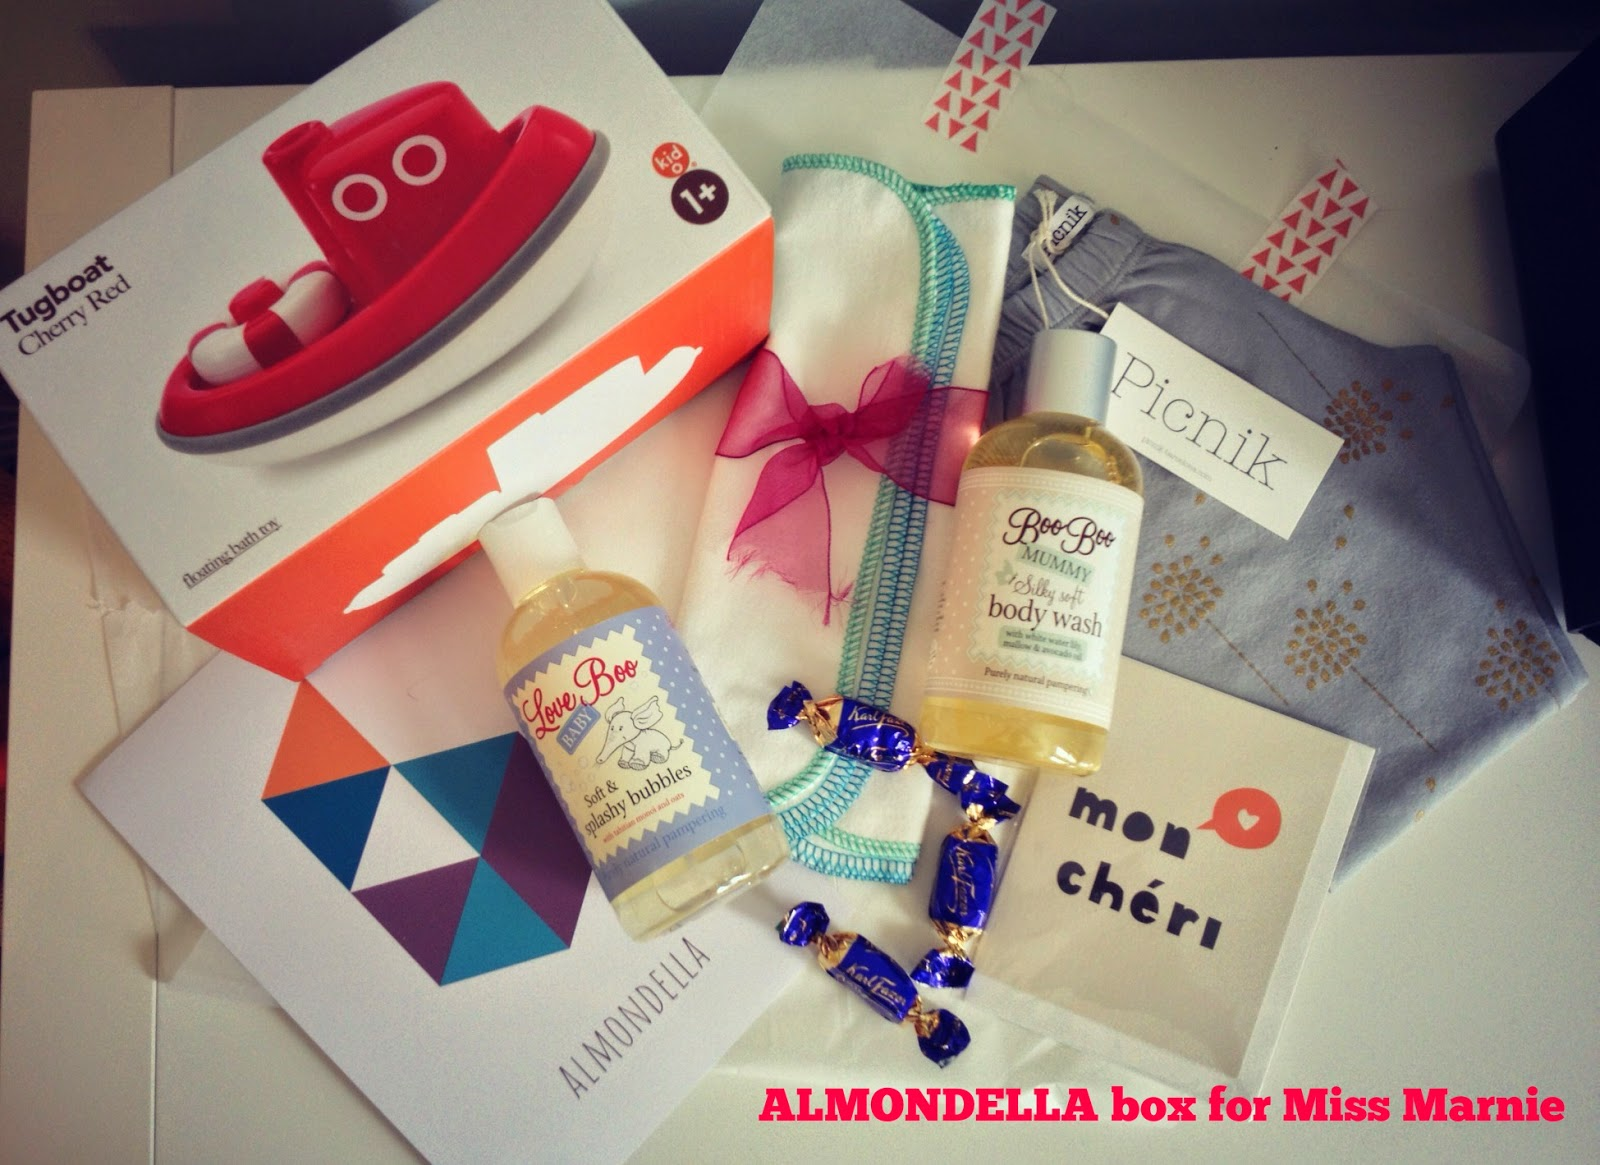 Brand New Baby Gift Ideas : The perfect new baby gift delivered by almondella v i